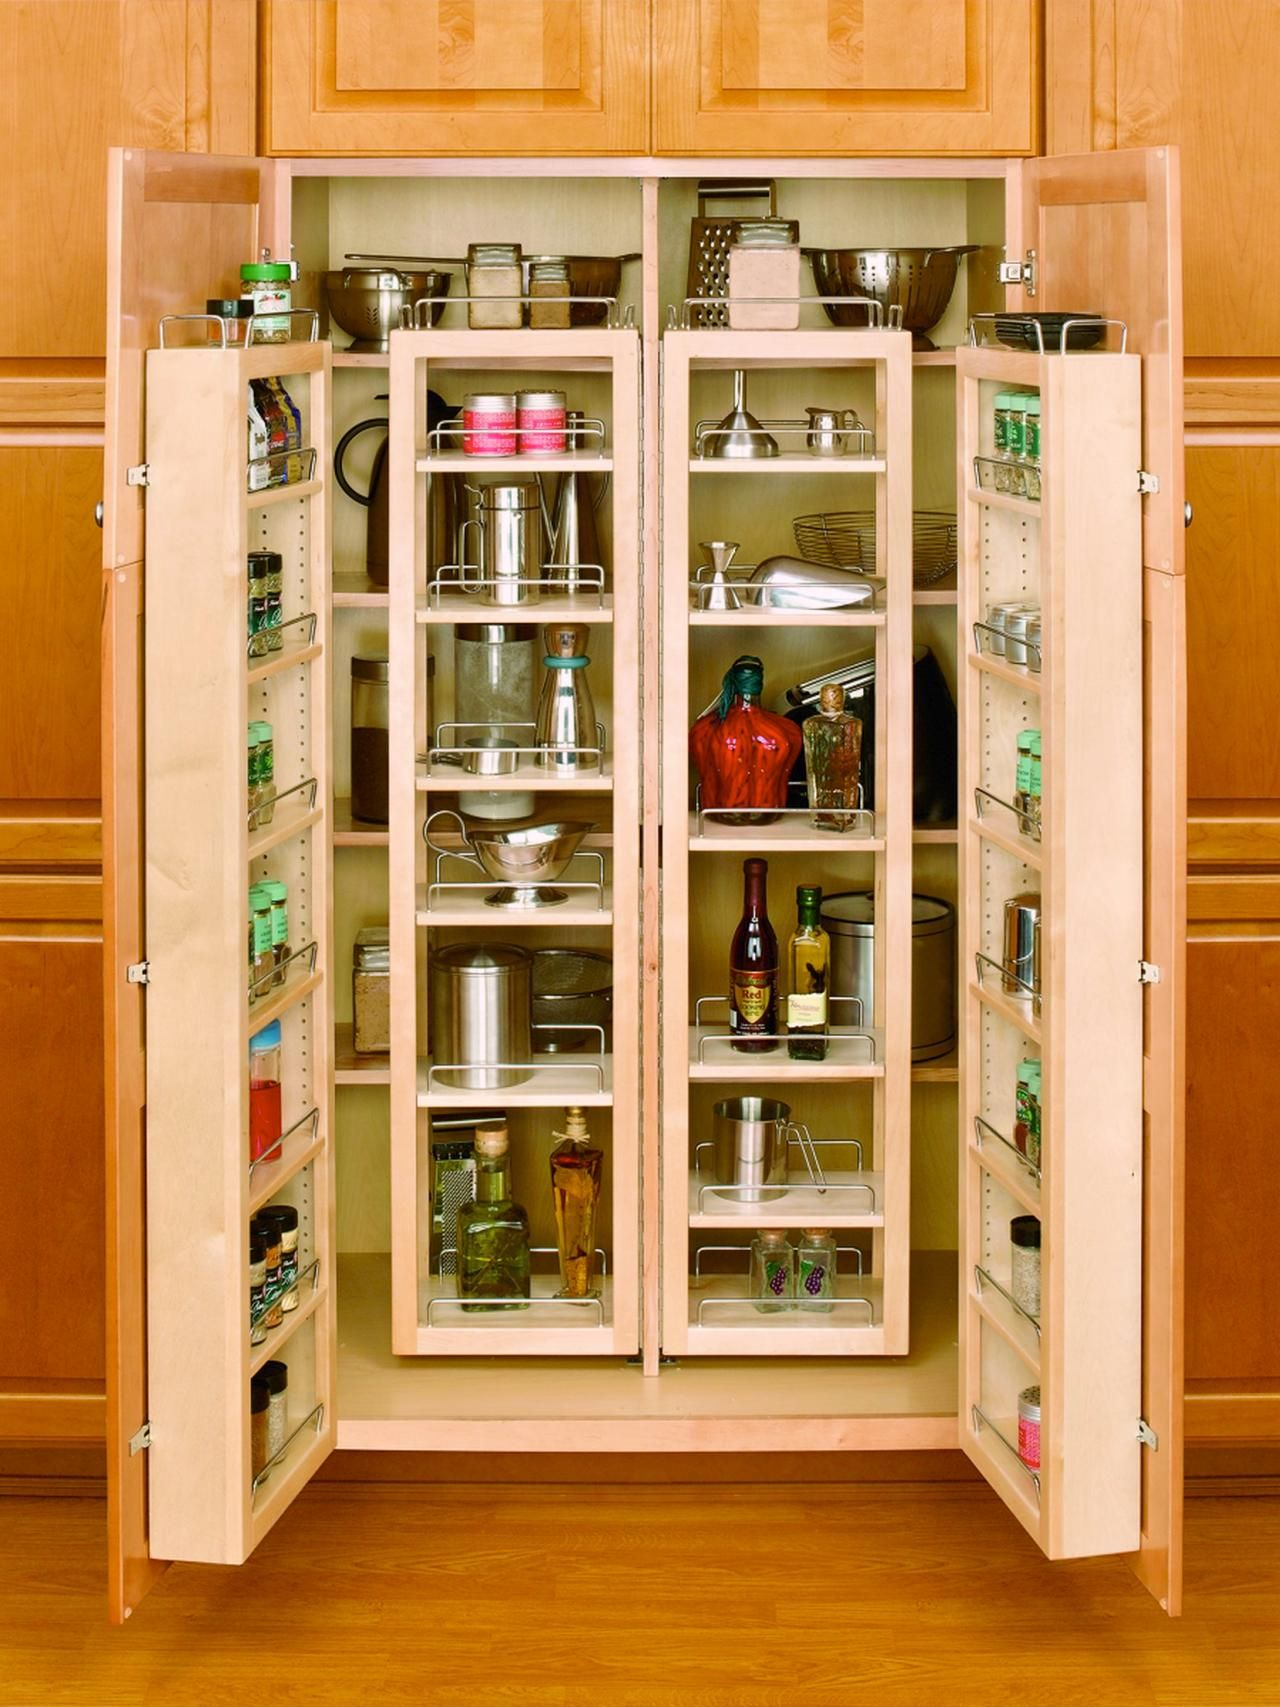 Organization and design ideas for storage in the kitchen pantry diy network solutioingenieria Gallery